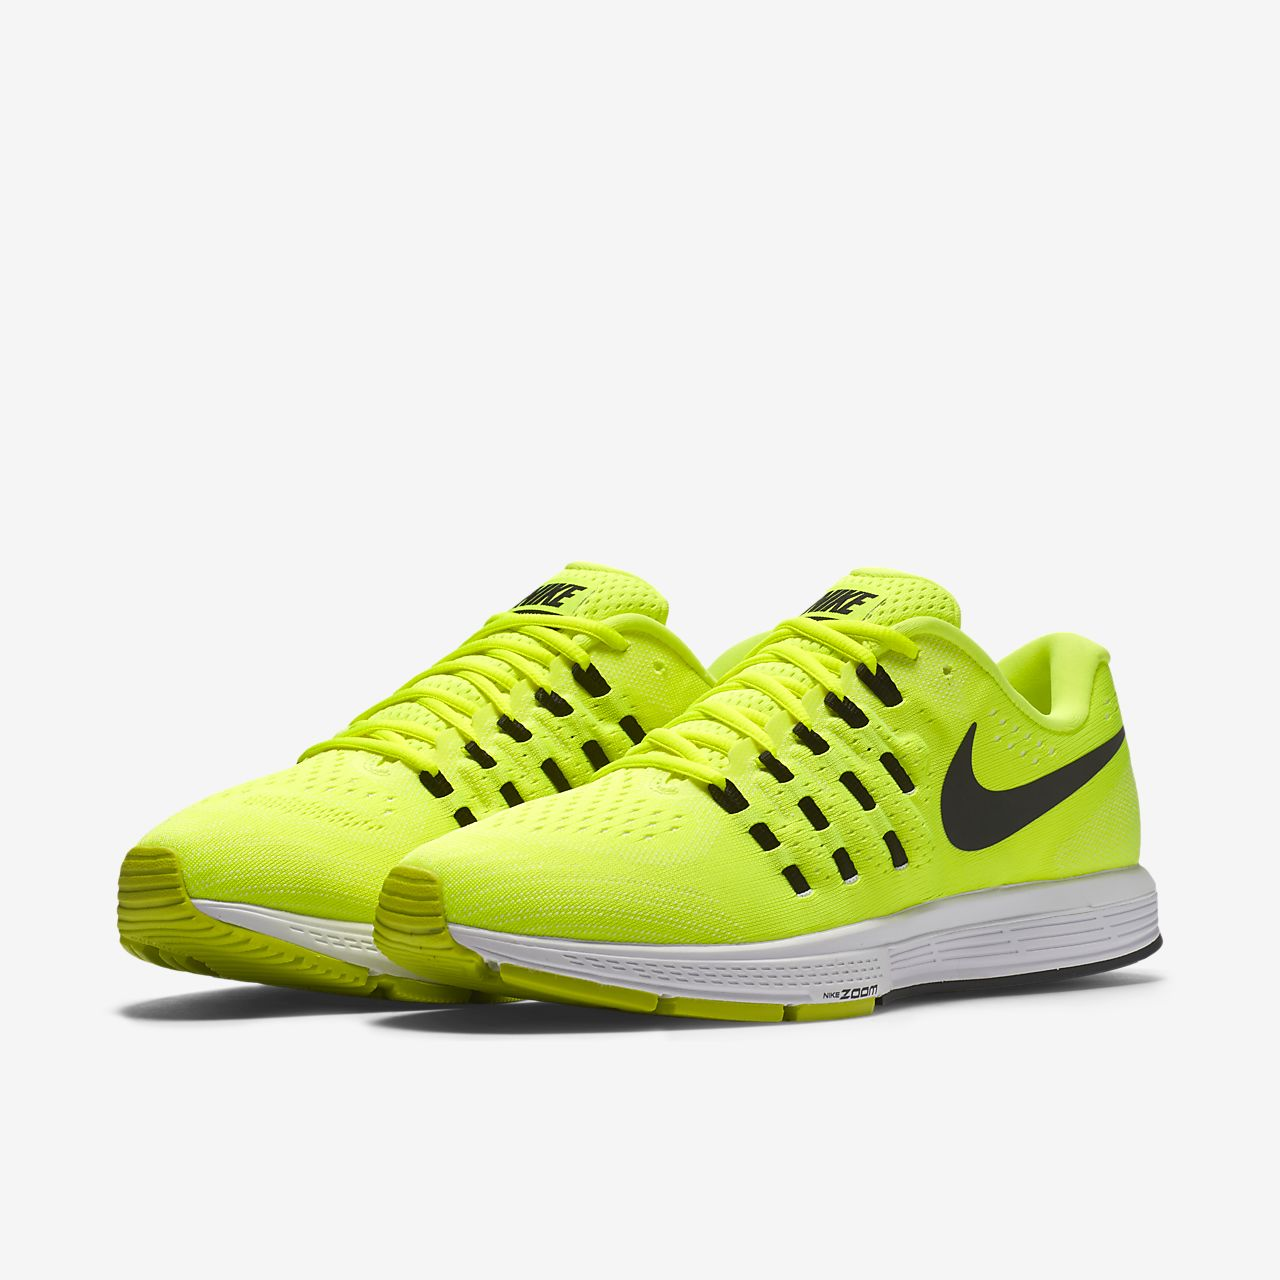 Nike Chaussure Lourd Coureur Chaussure Pour Pour Chaussure Nike Coureur Lourd vmn0Nw8